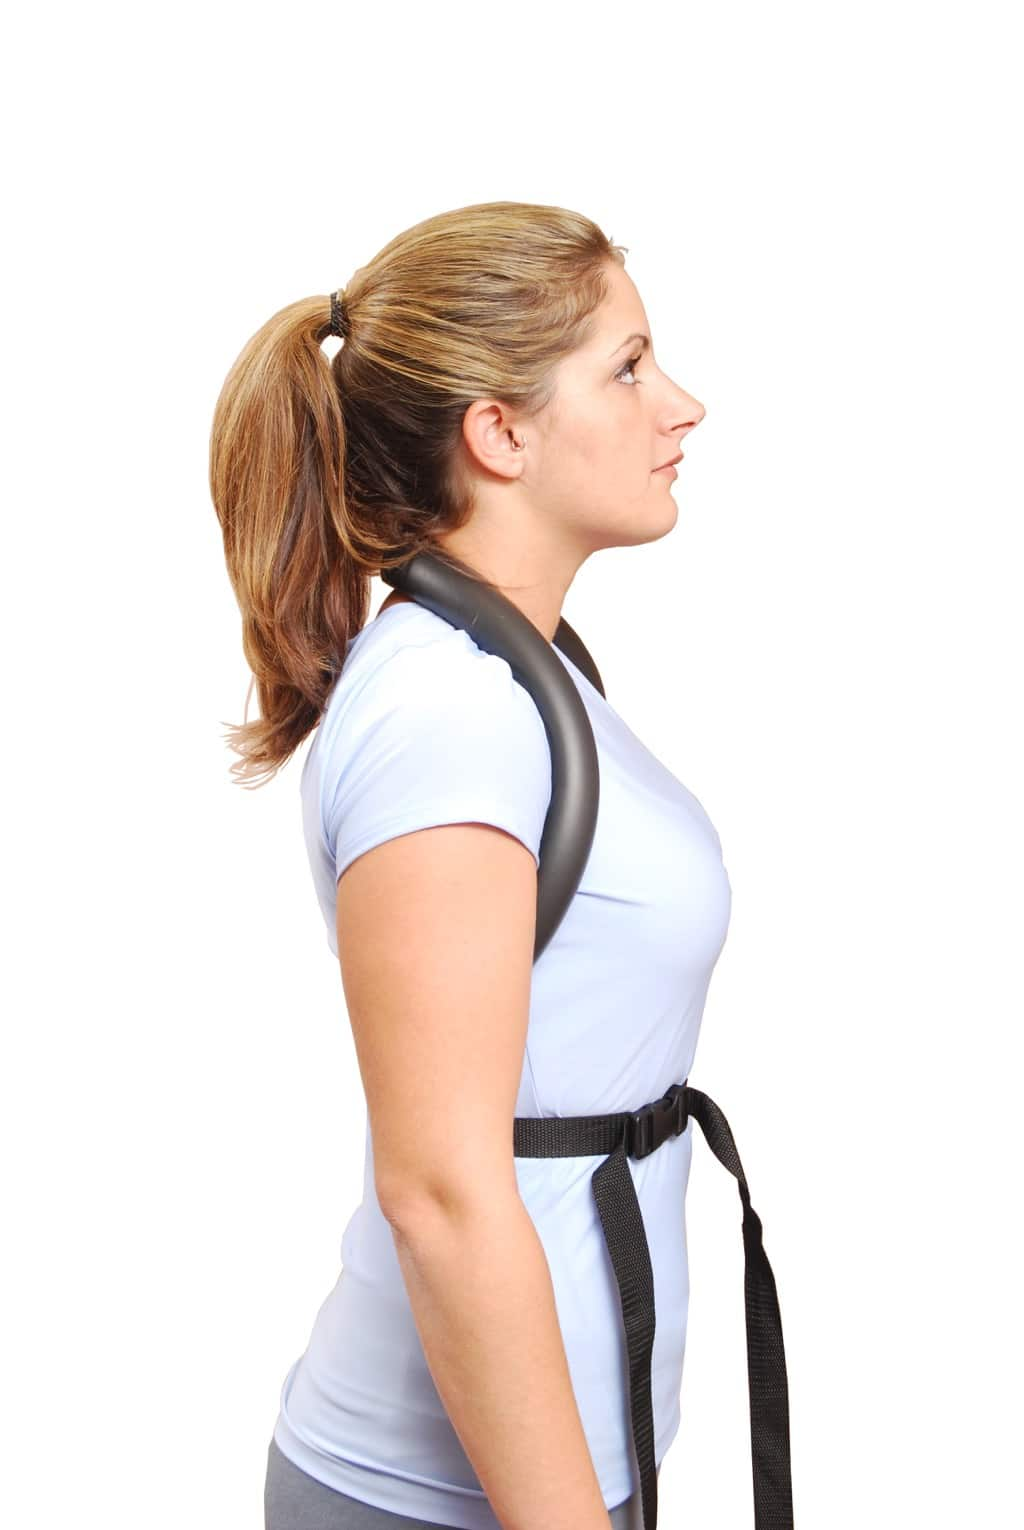 pettibon wobble chair lift medicare cervical lordosis posture strap the system